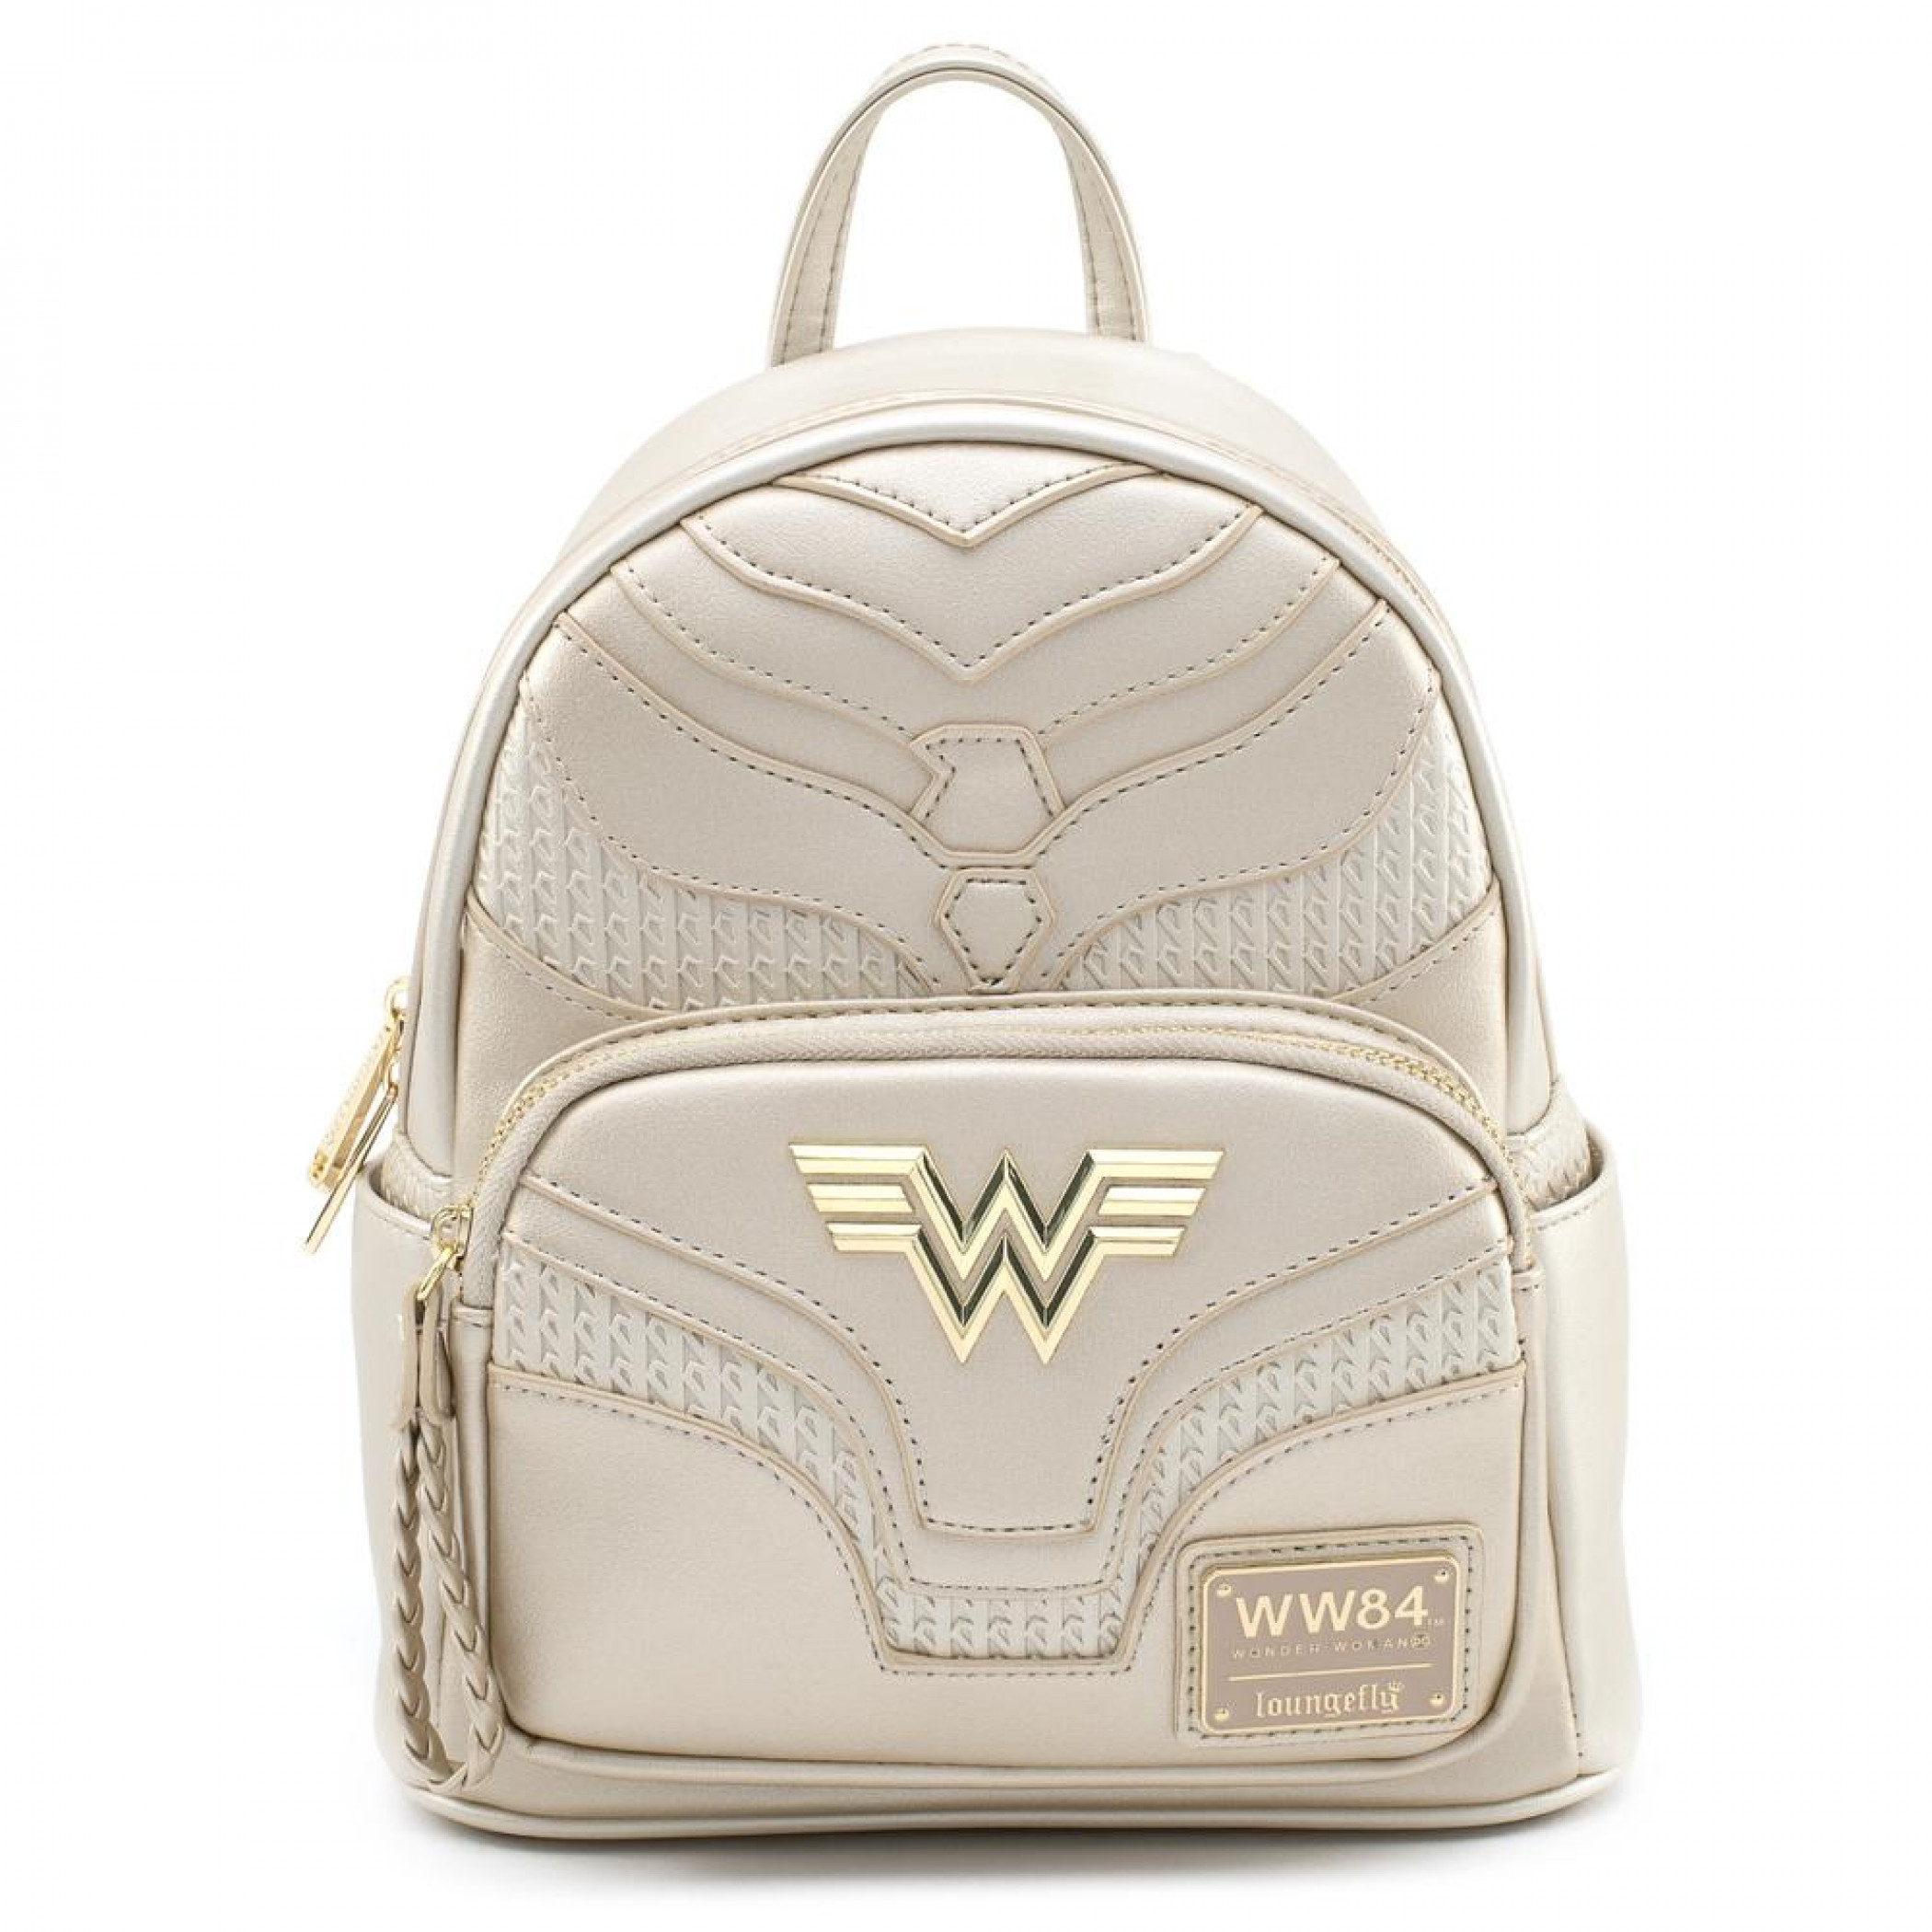 Wonder Woman 84 Gold Mini Backpack with Lasso Zipper Pull by Loungefly